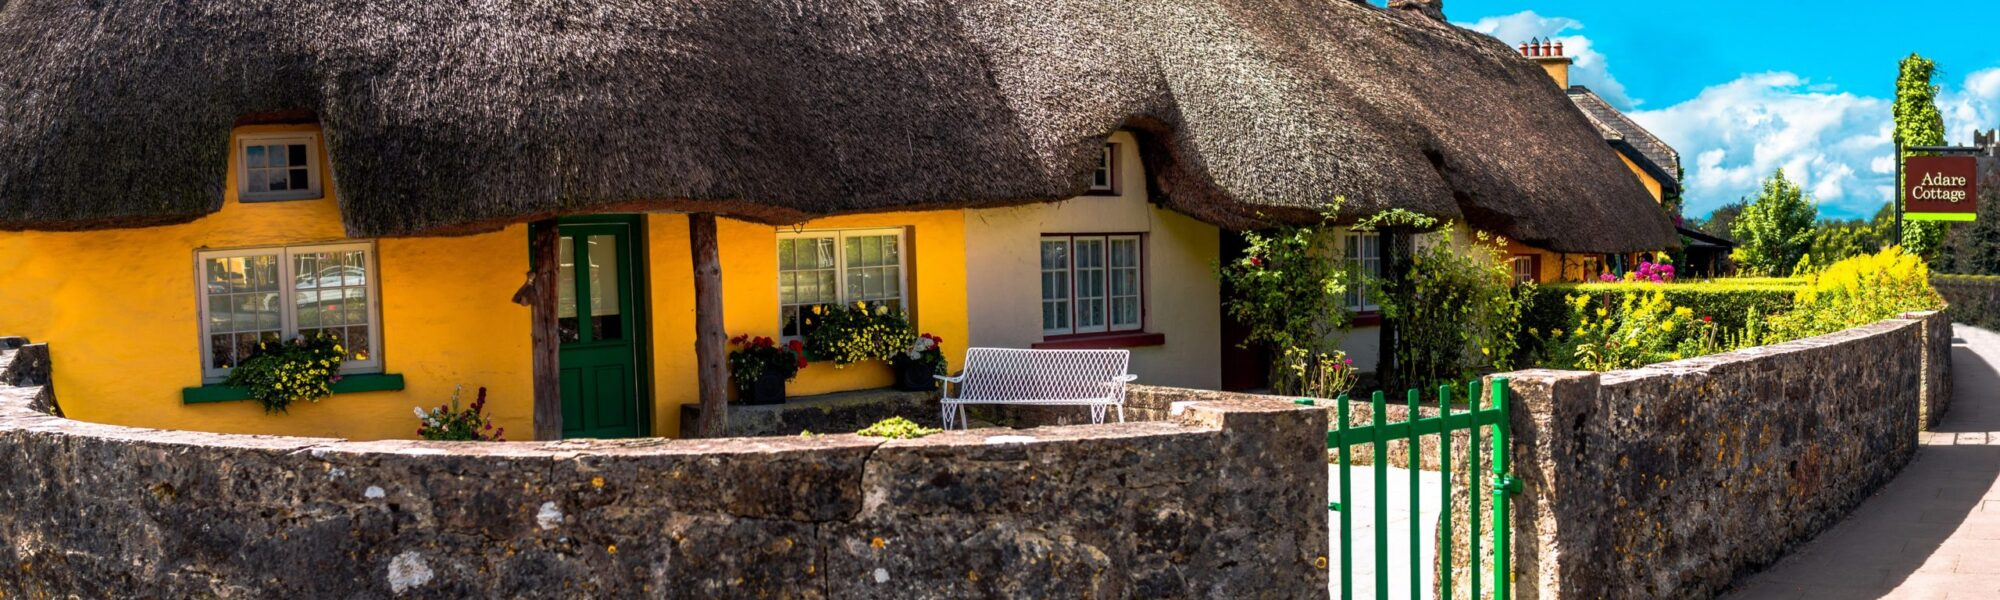 A house in Adare, Ireland - © Lyd Photography